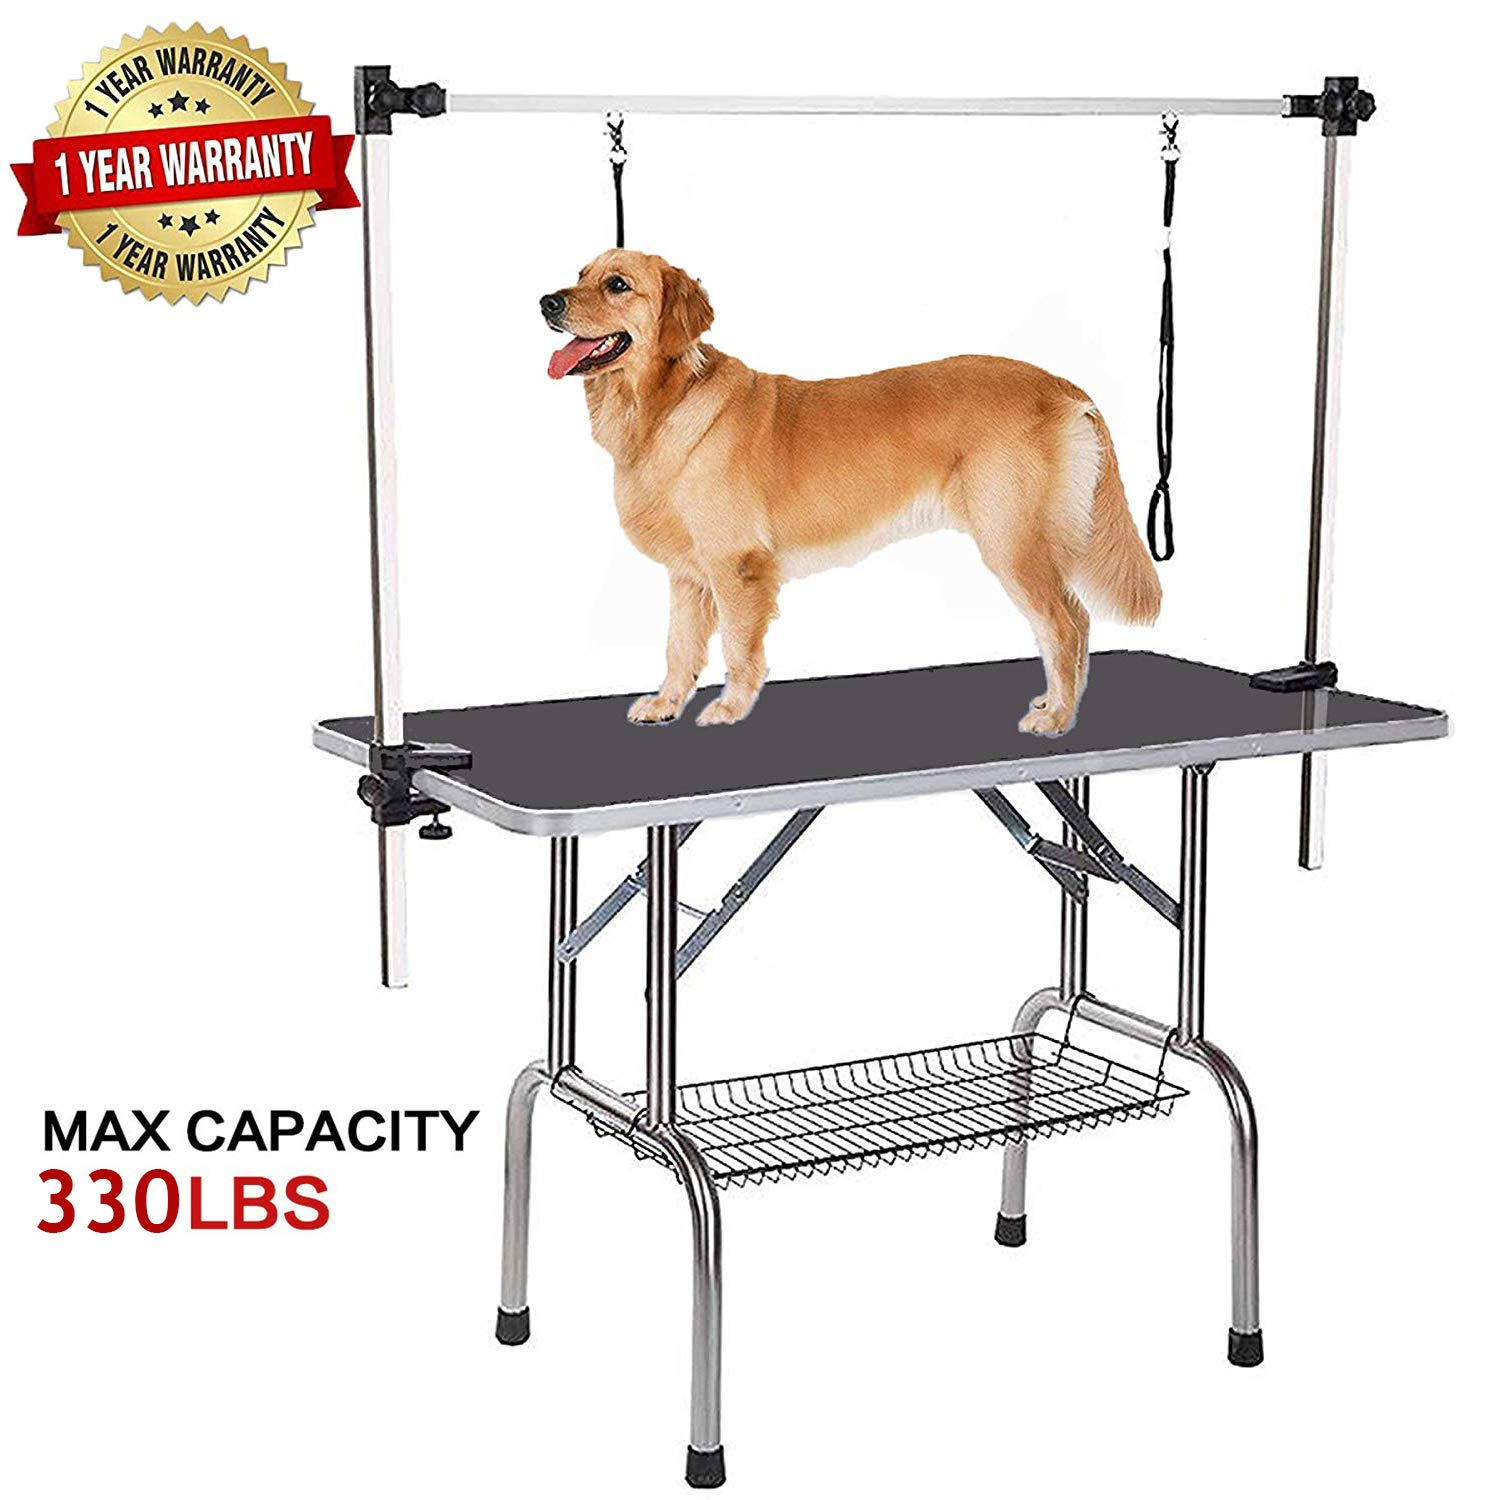 Pet Grooming Table for Large Dogs Adjustable Professional - Portable Trimming Drying Table w/Arm/Noose/Mesh Tray, Maximum Capacity Up to 330LB by HAIGE PET Your Pet Nanny